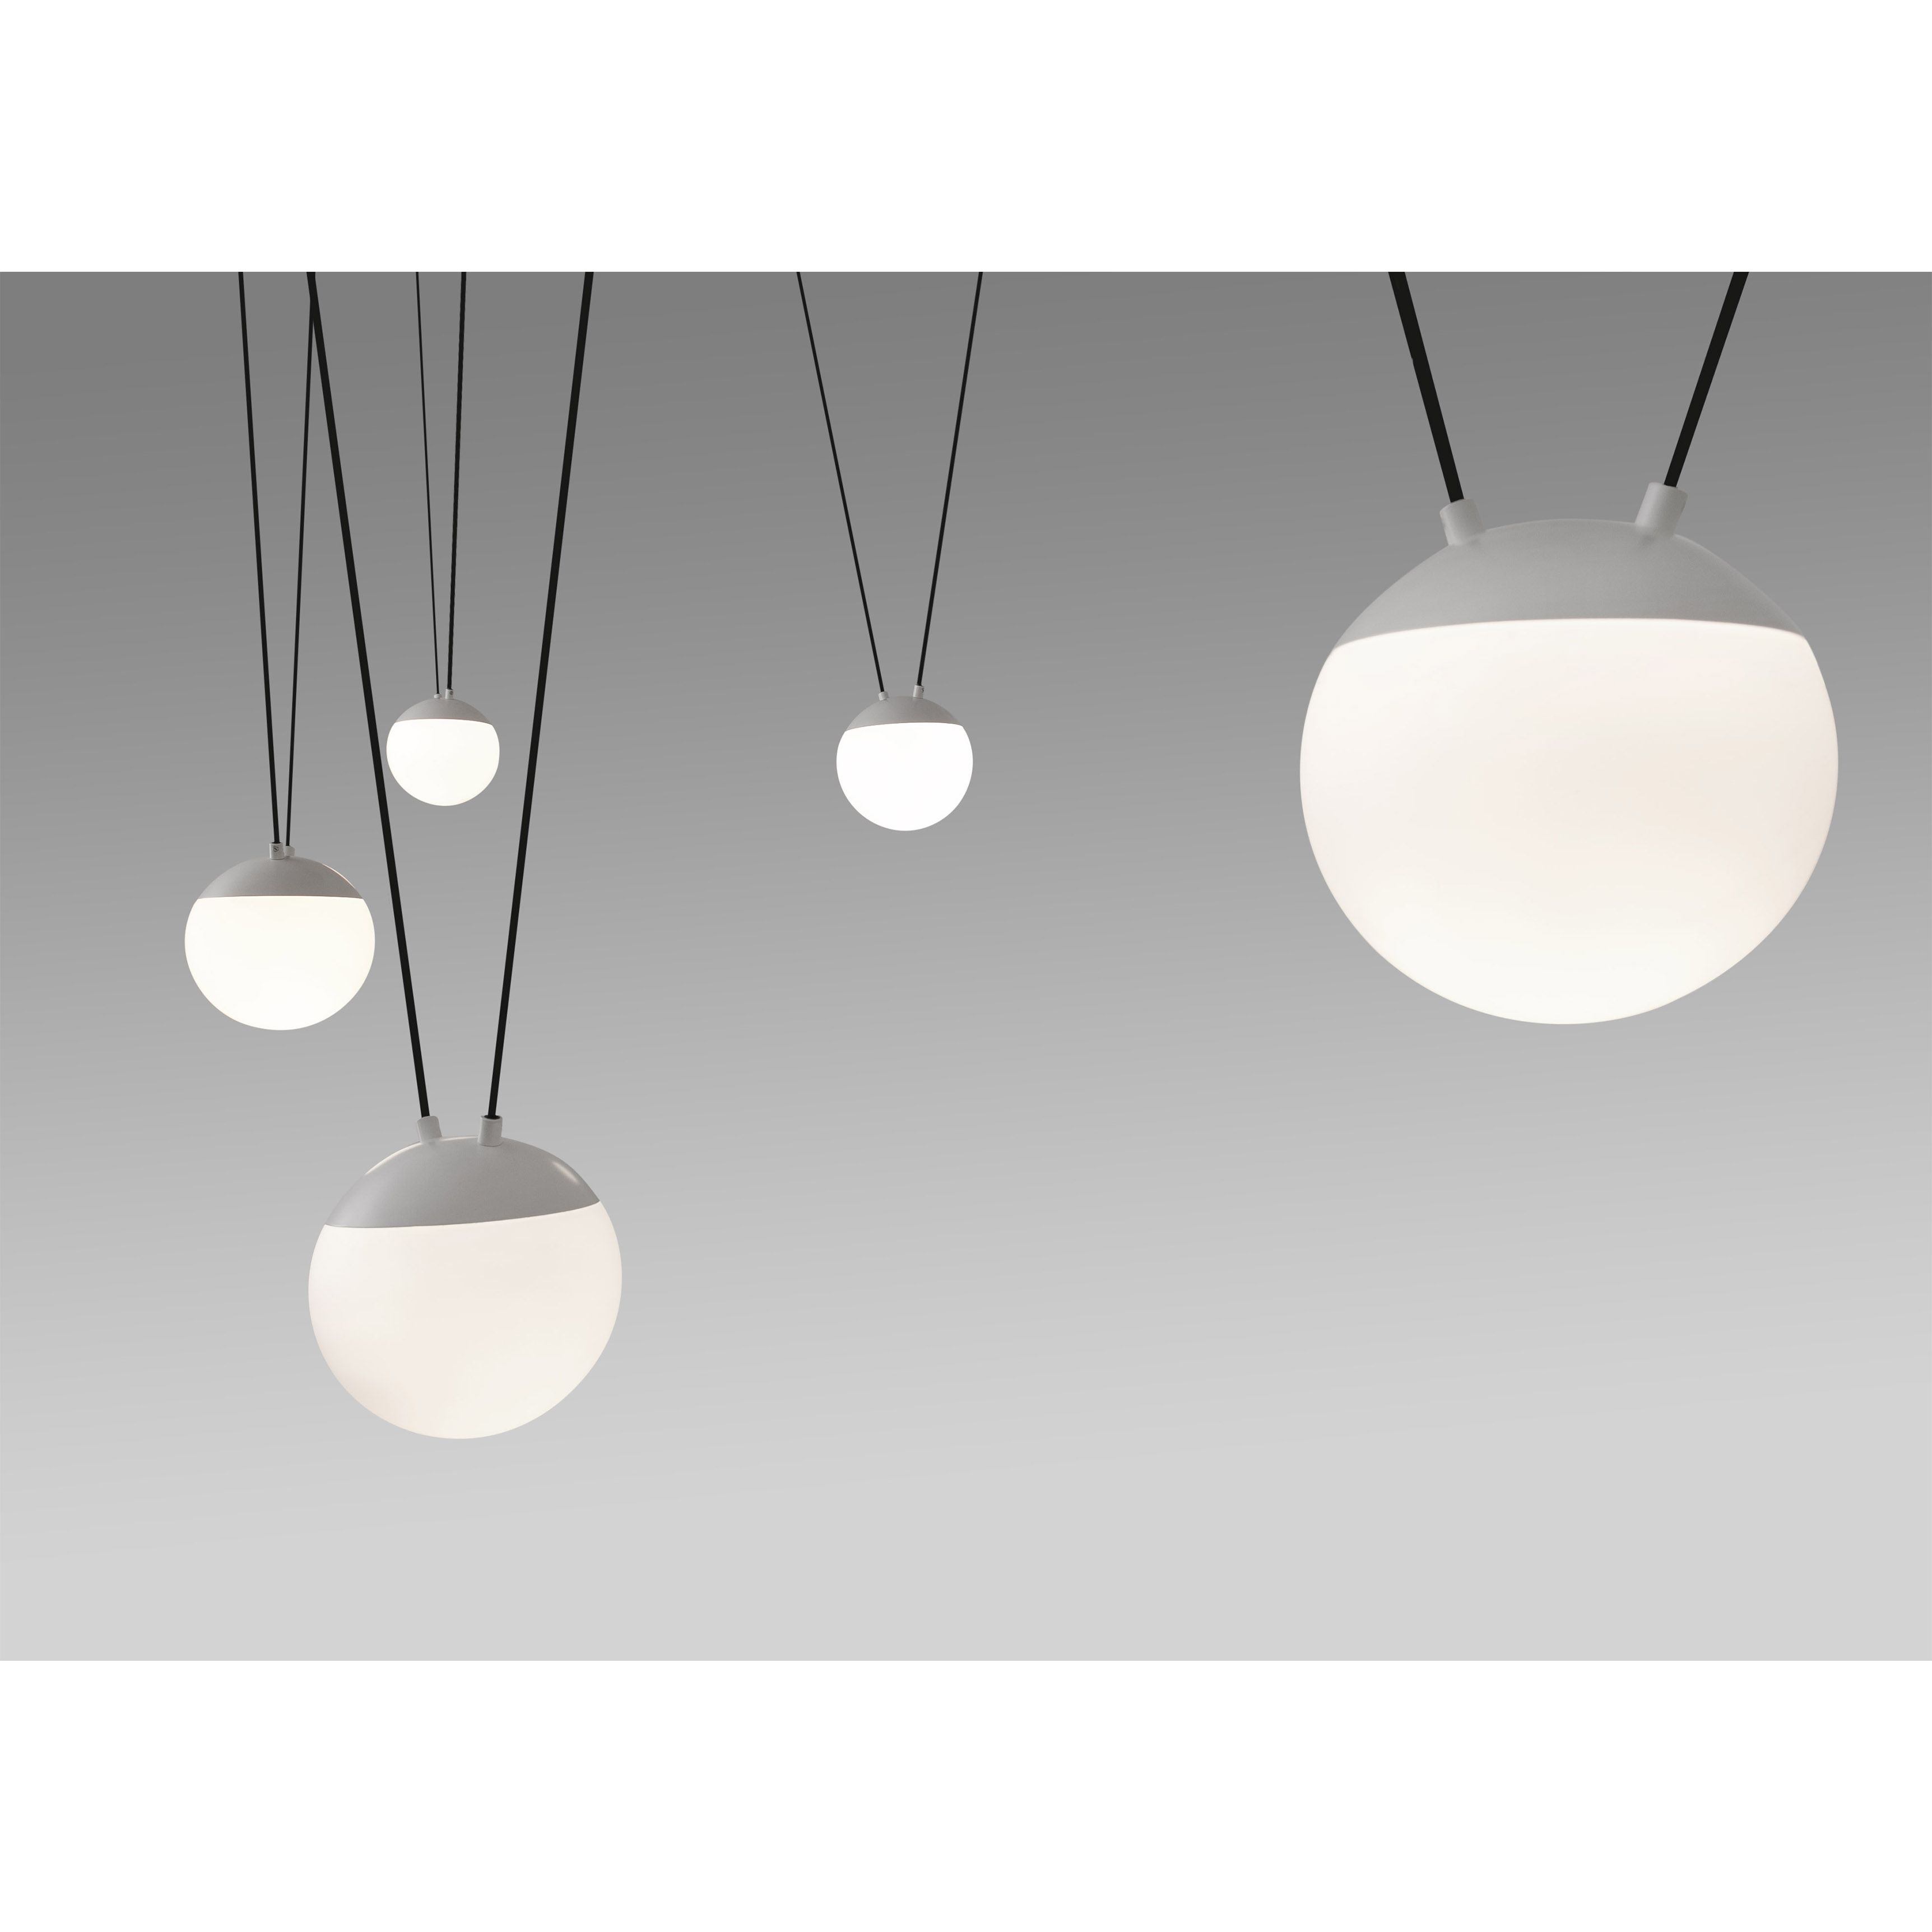 SPACE 5Liluminación White MINE suspension Lighting bf7Yy6g